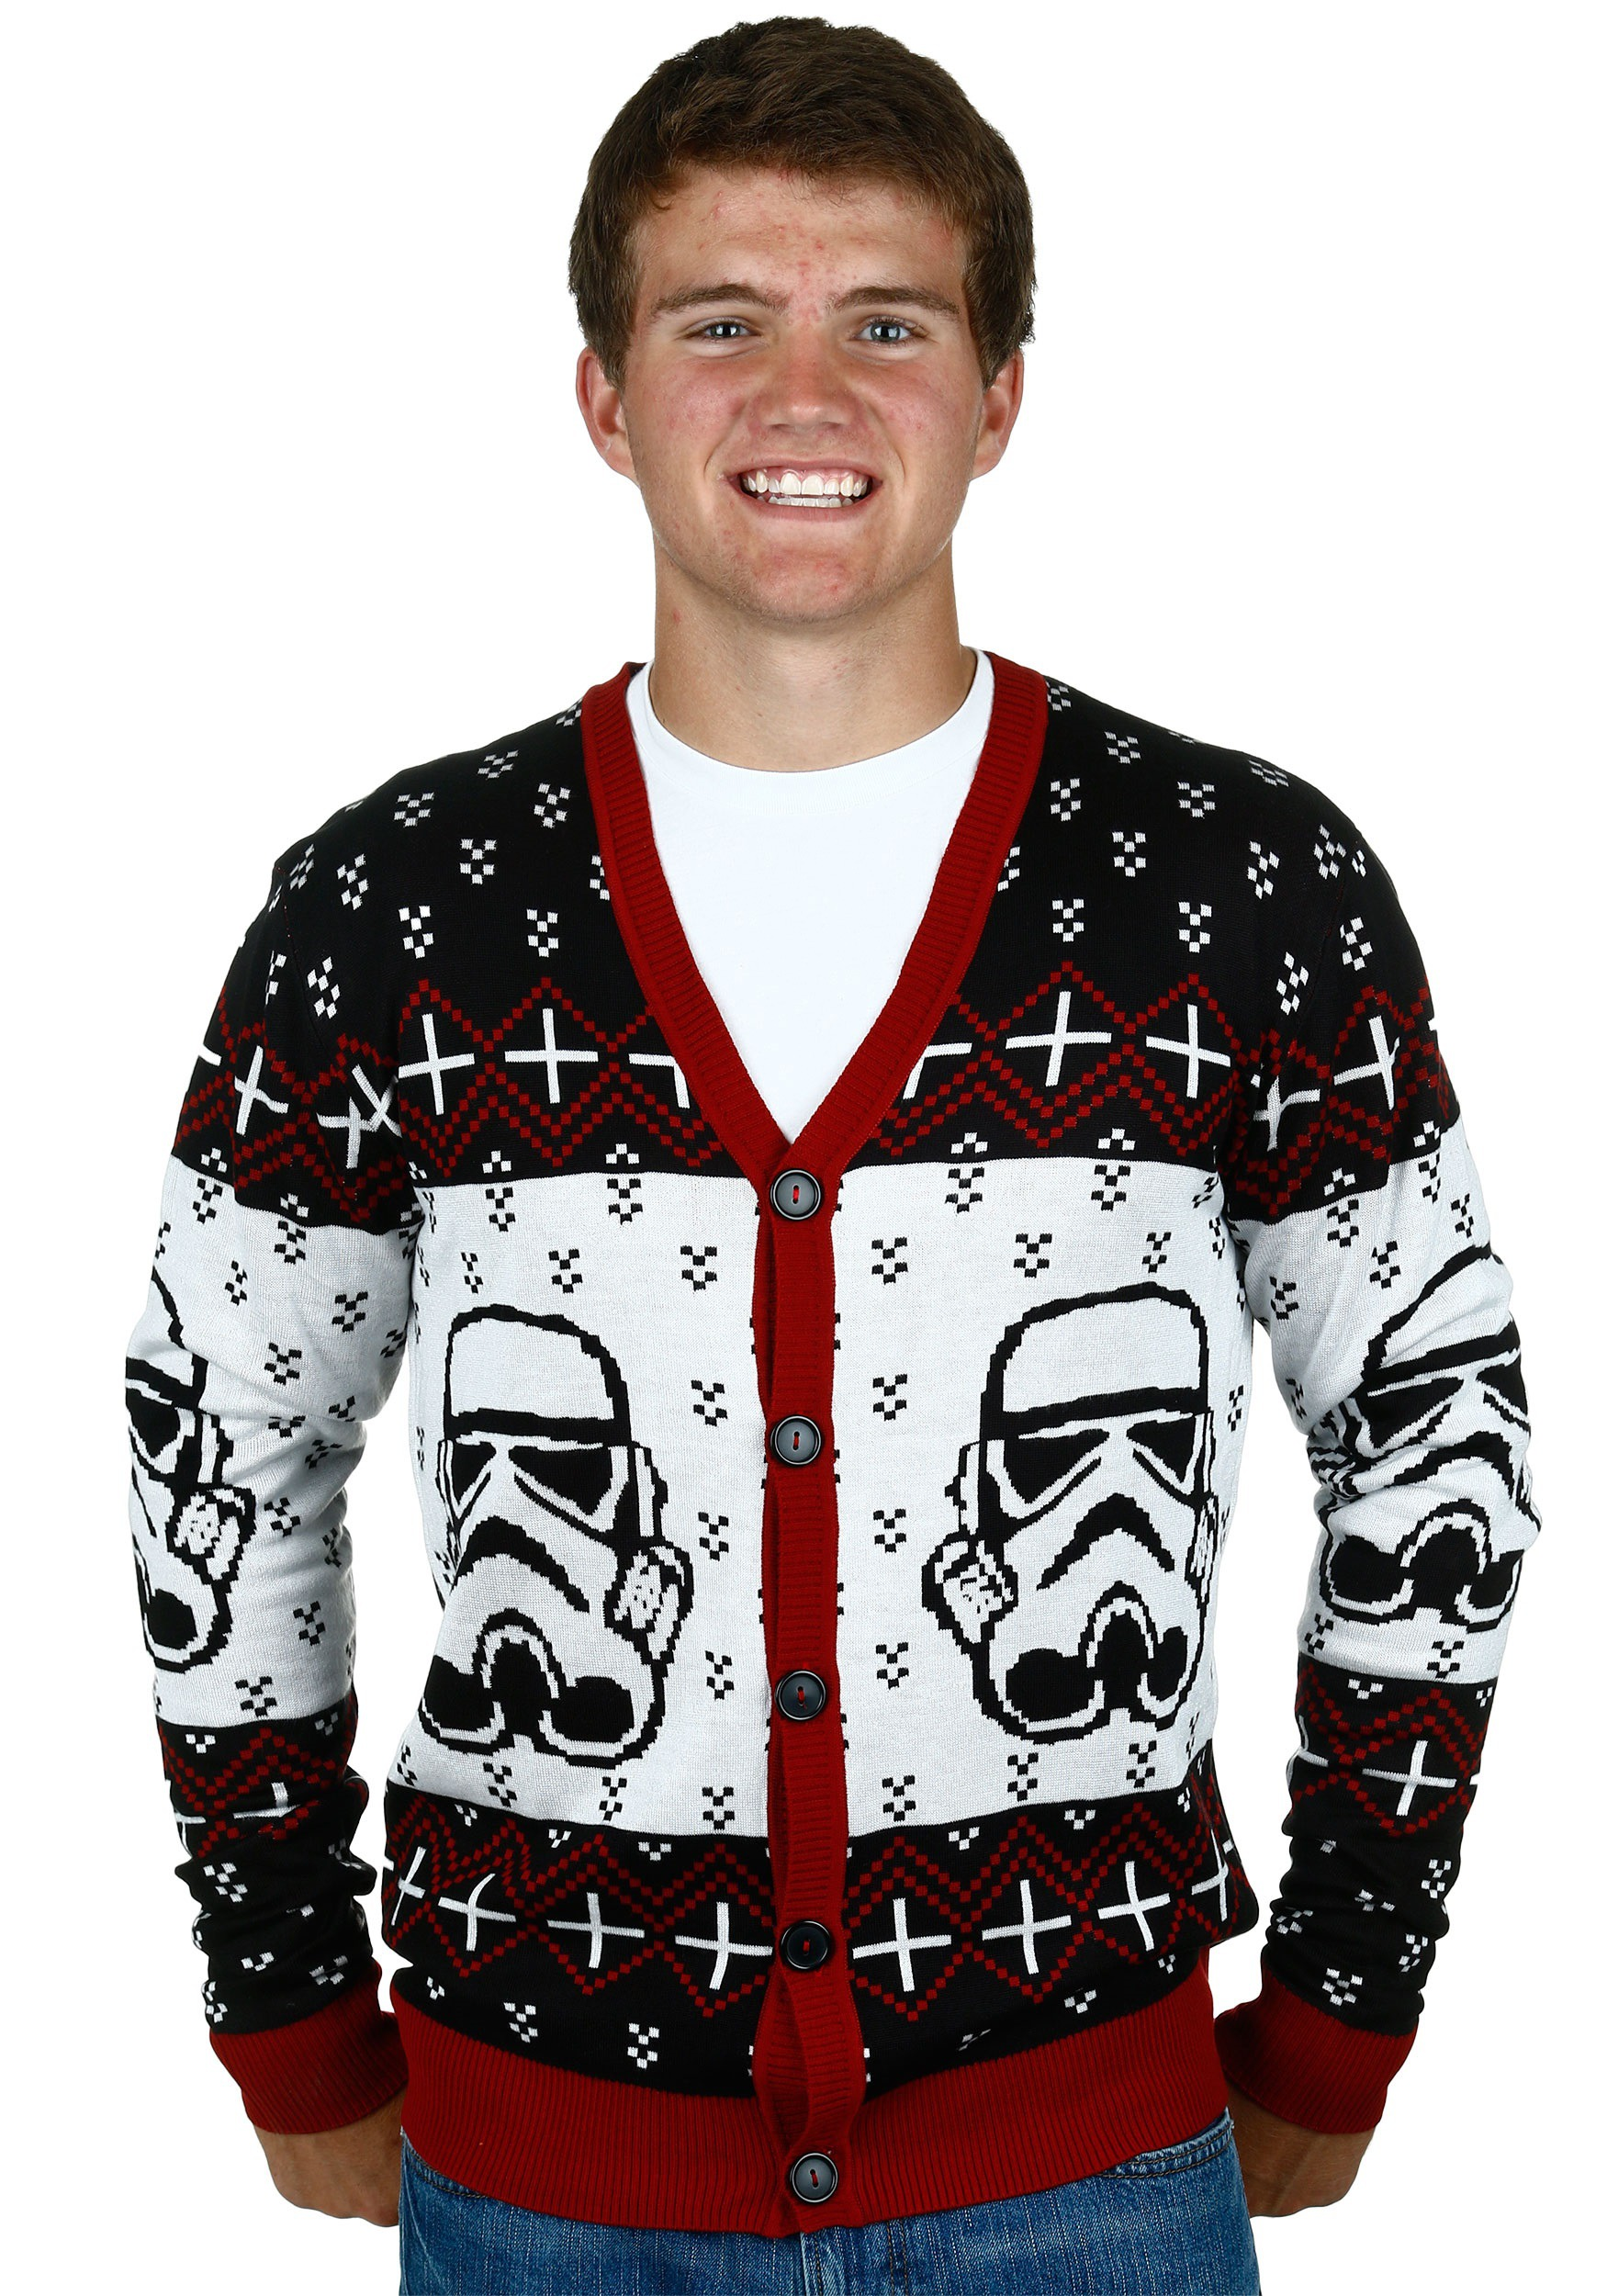 Star Wars Stormtrooper Mens Ugly Christmas Cardigan